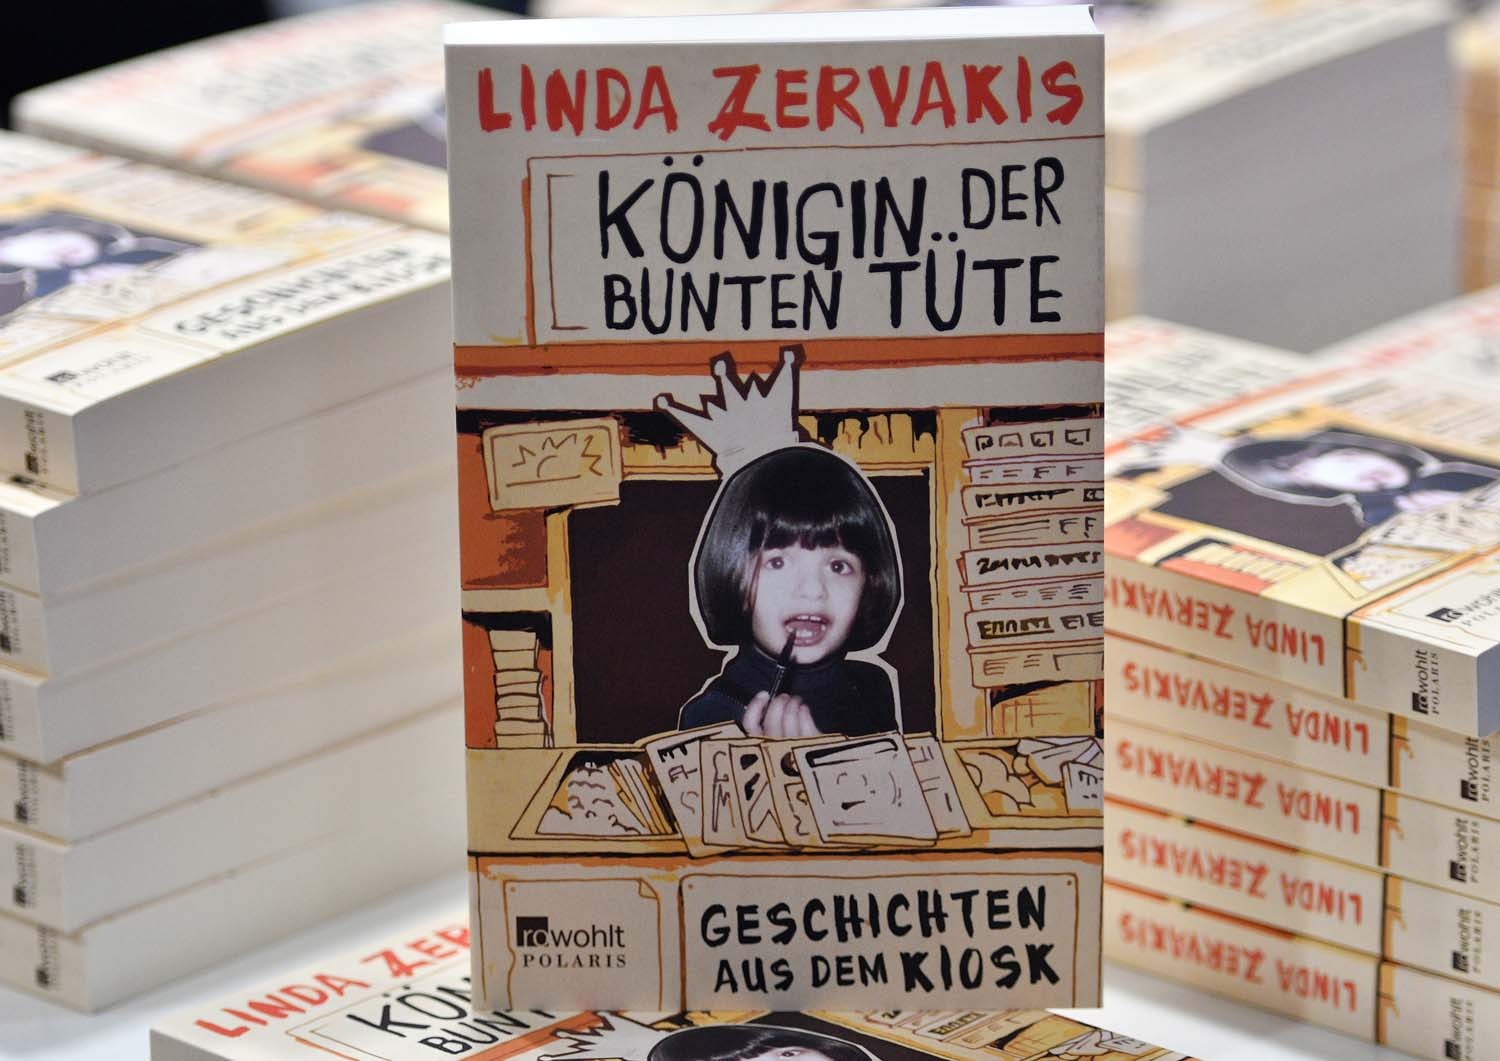 Linda Zervakis am 28. September 2018 in Daun